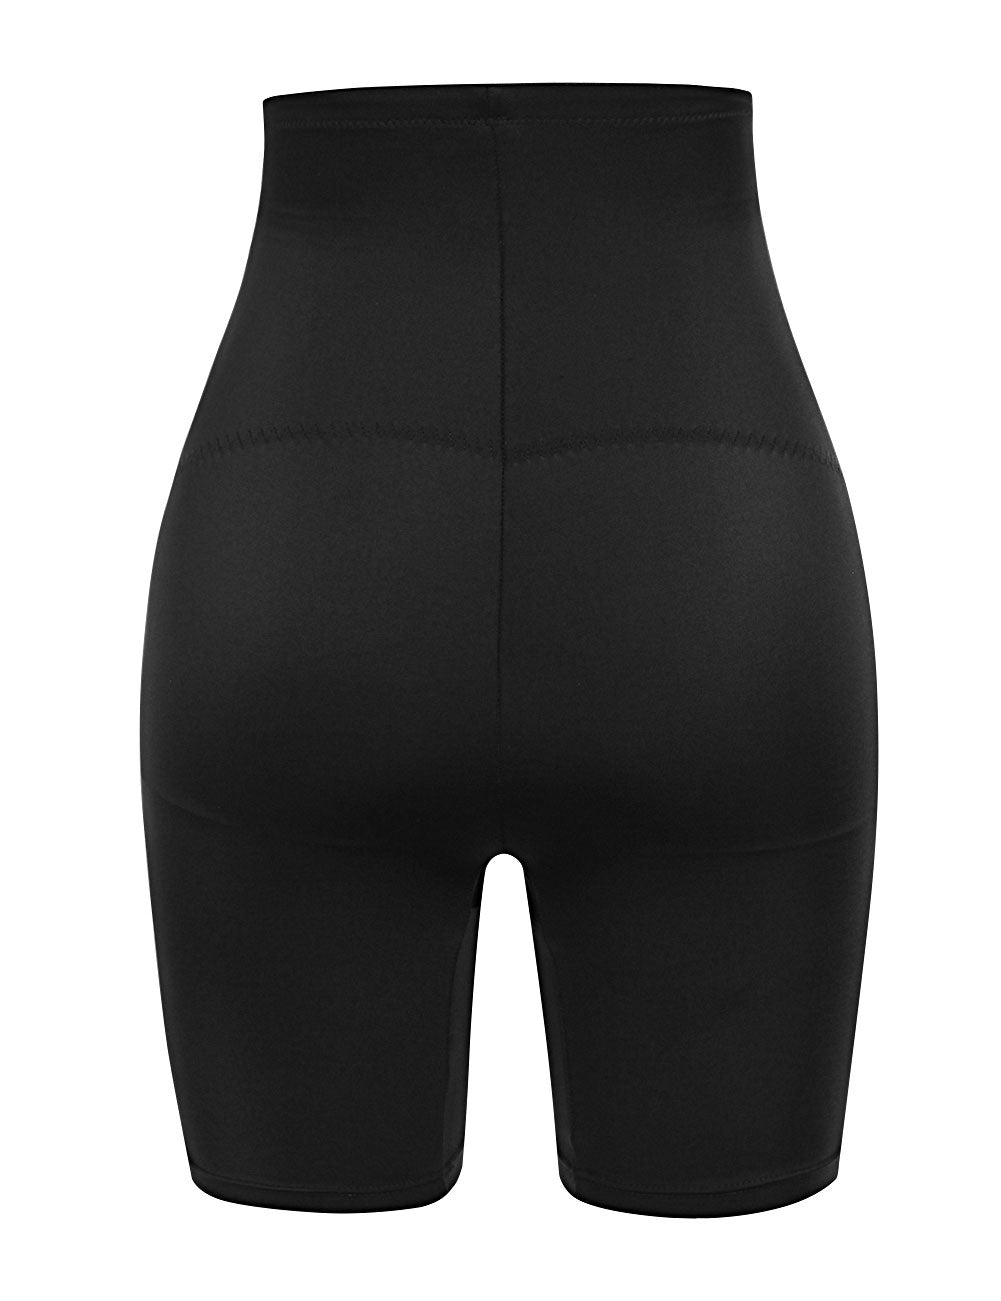 Tummy Control Shapewear for Big Thighs Compression Slimmer|Loverbeauty